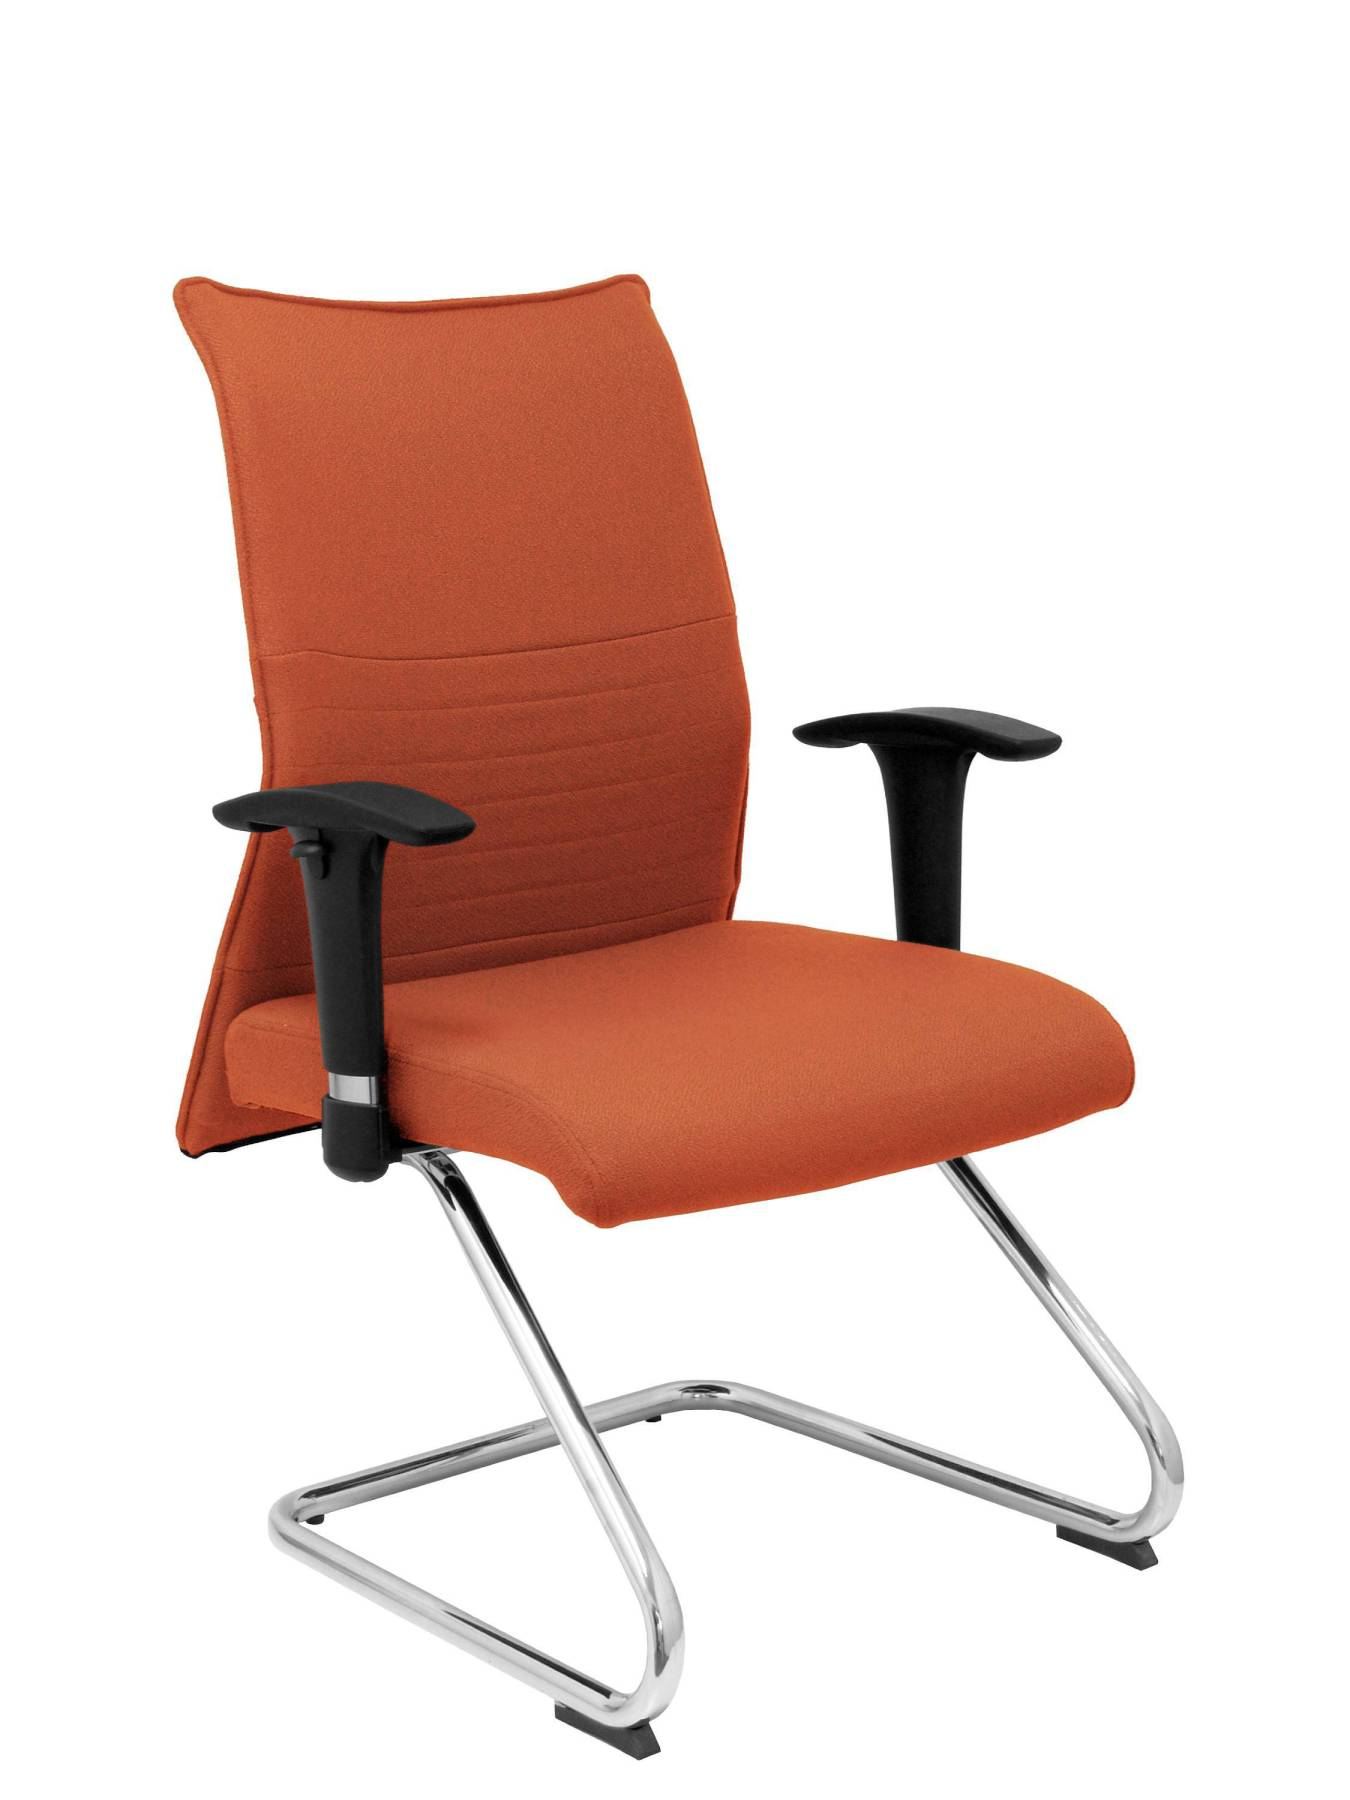 Armchair Confidante Ergonomic For Visits With Skate Chrome Up Seat And Backstop Upholstered In BALI Tissue Color Marró